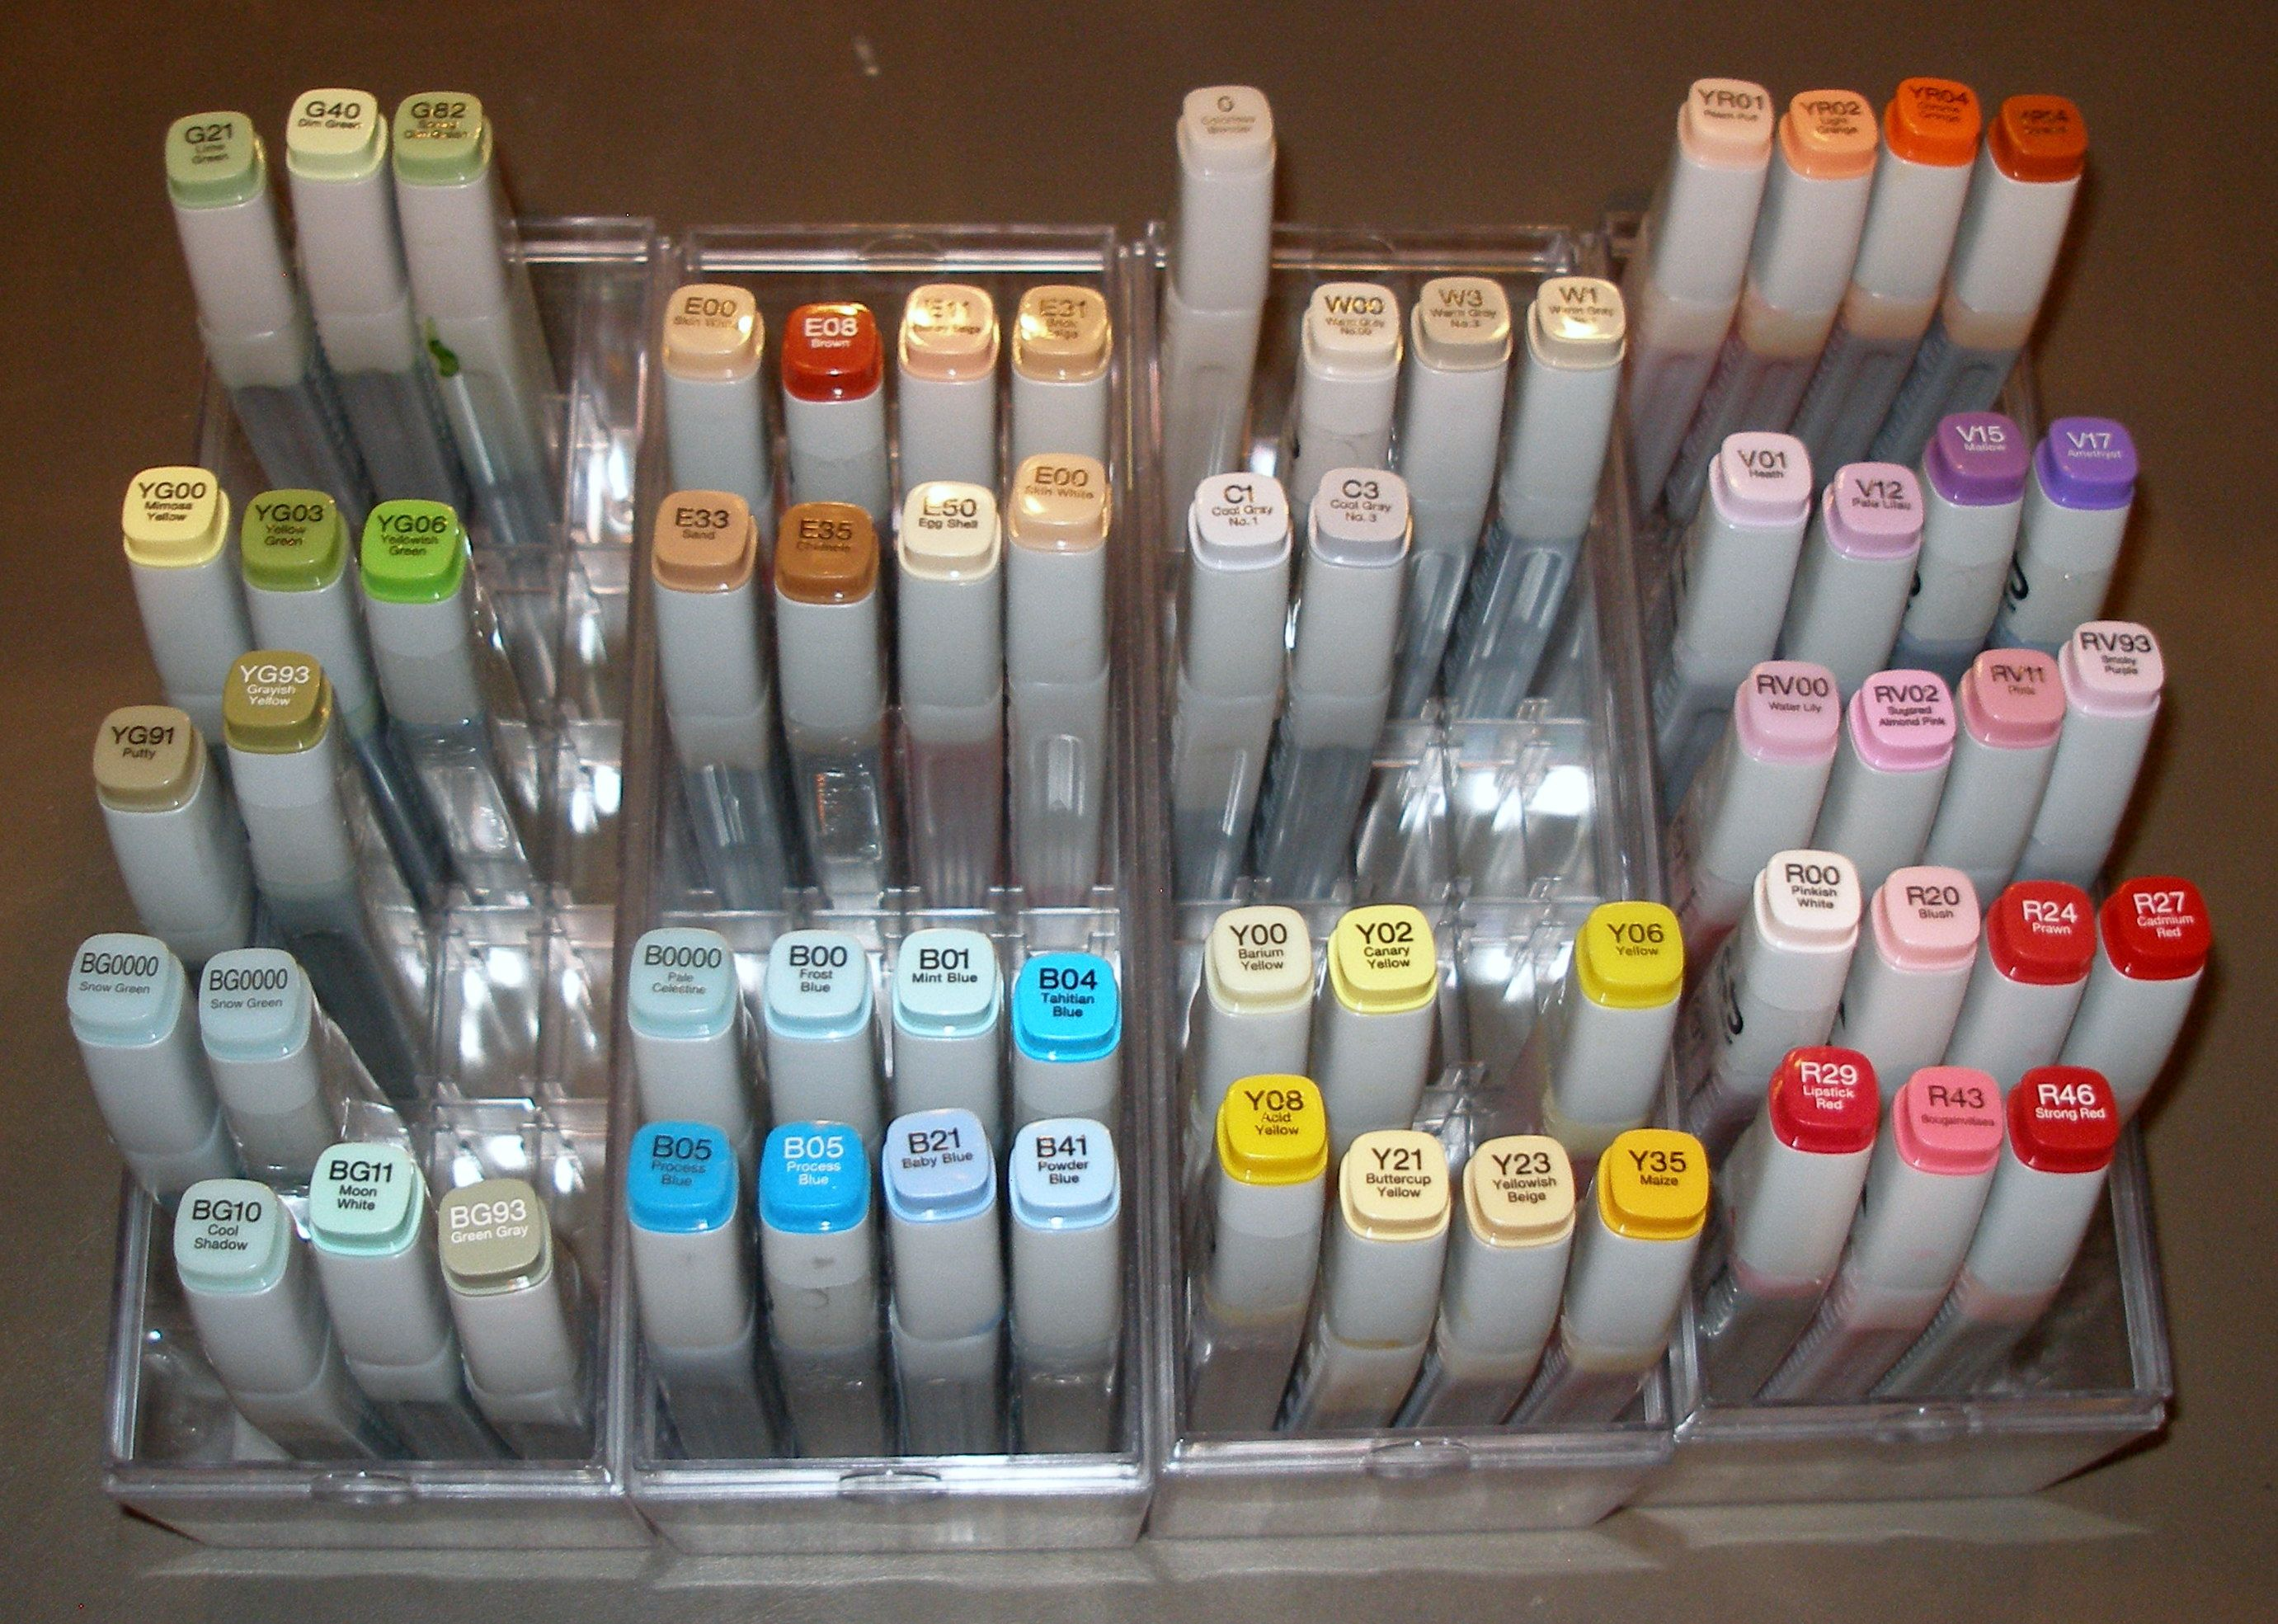 Copic Marker Refill Storage With Images Copic Marker Refills